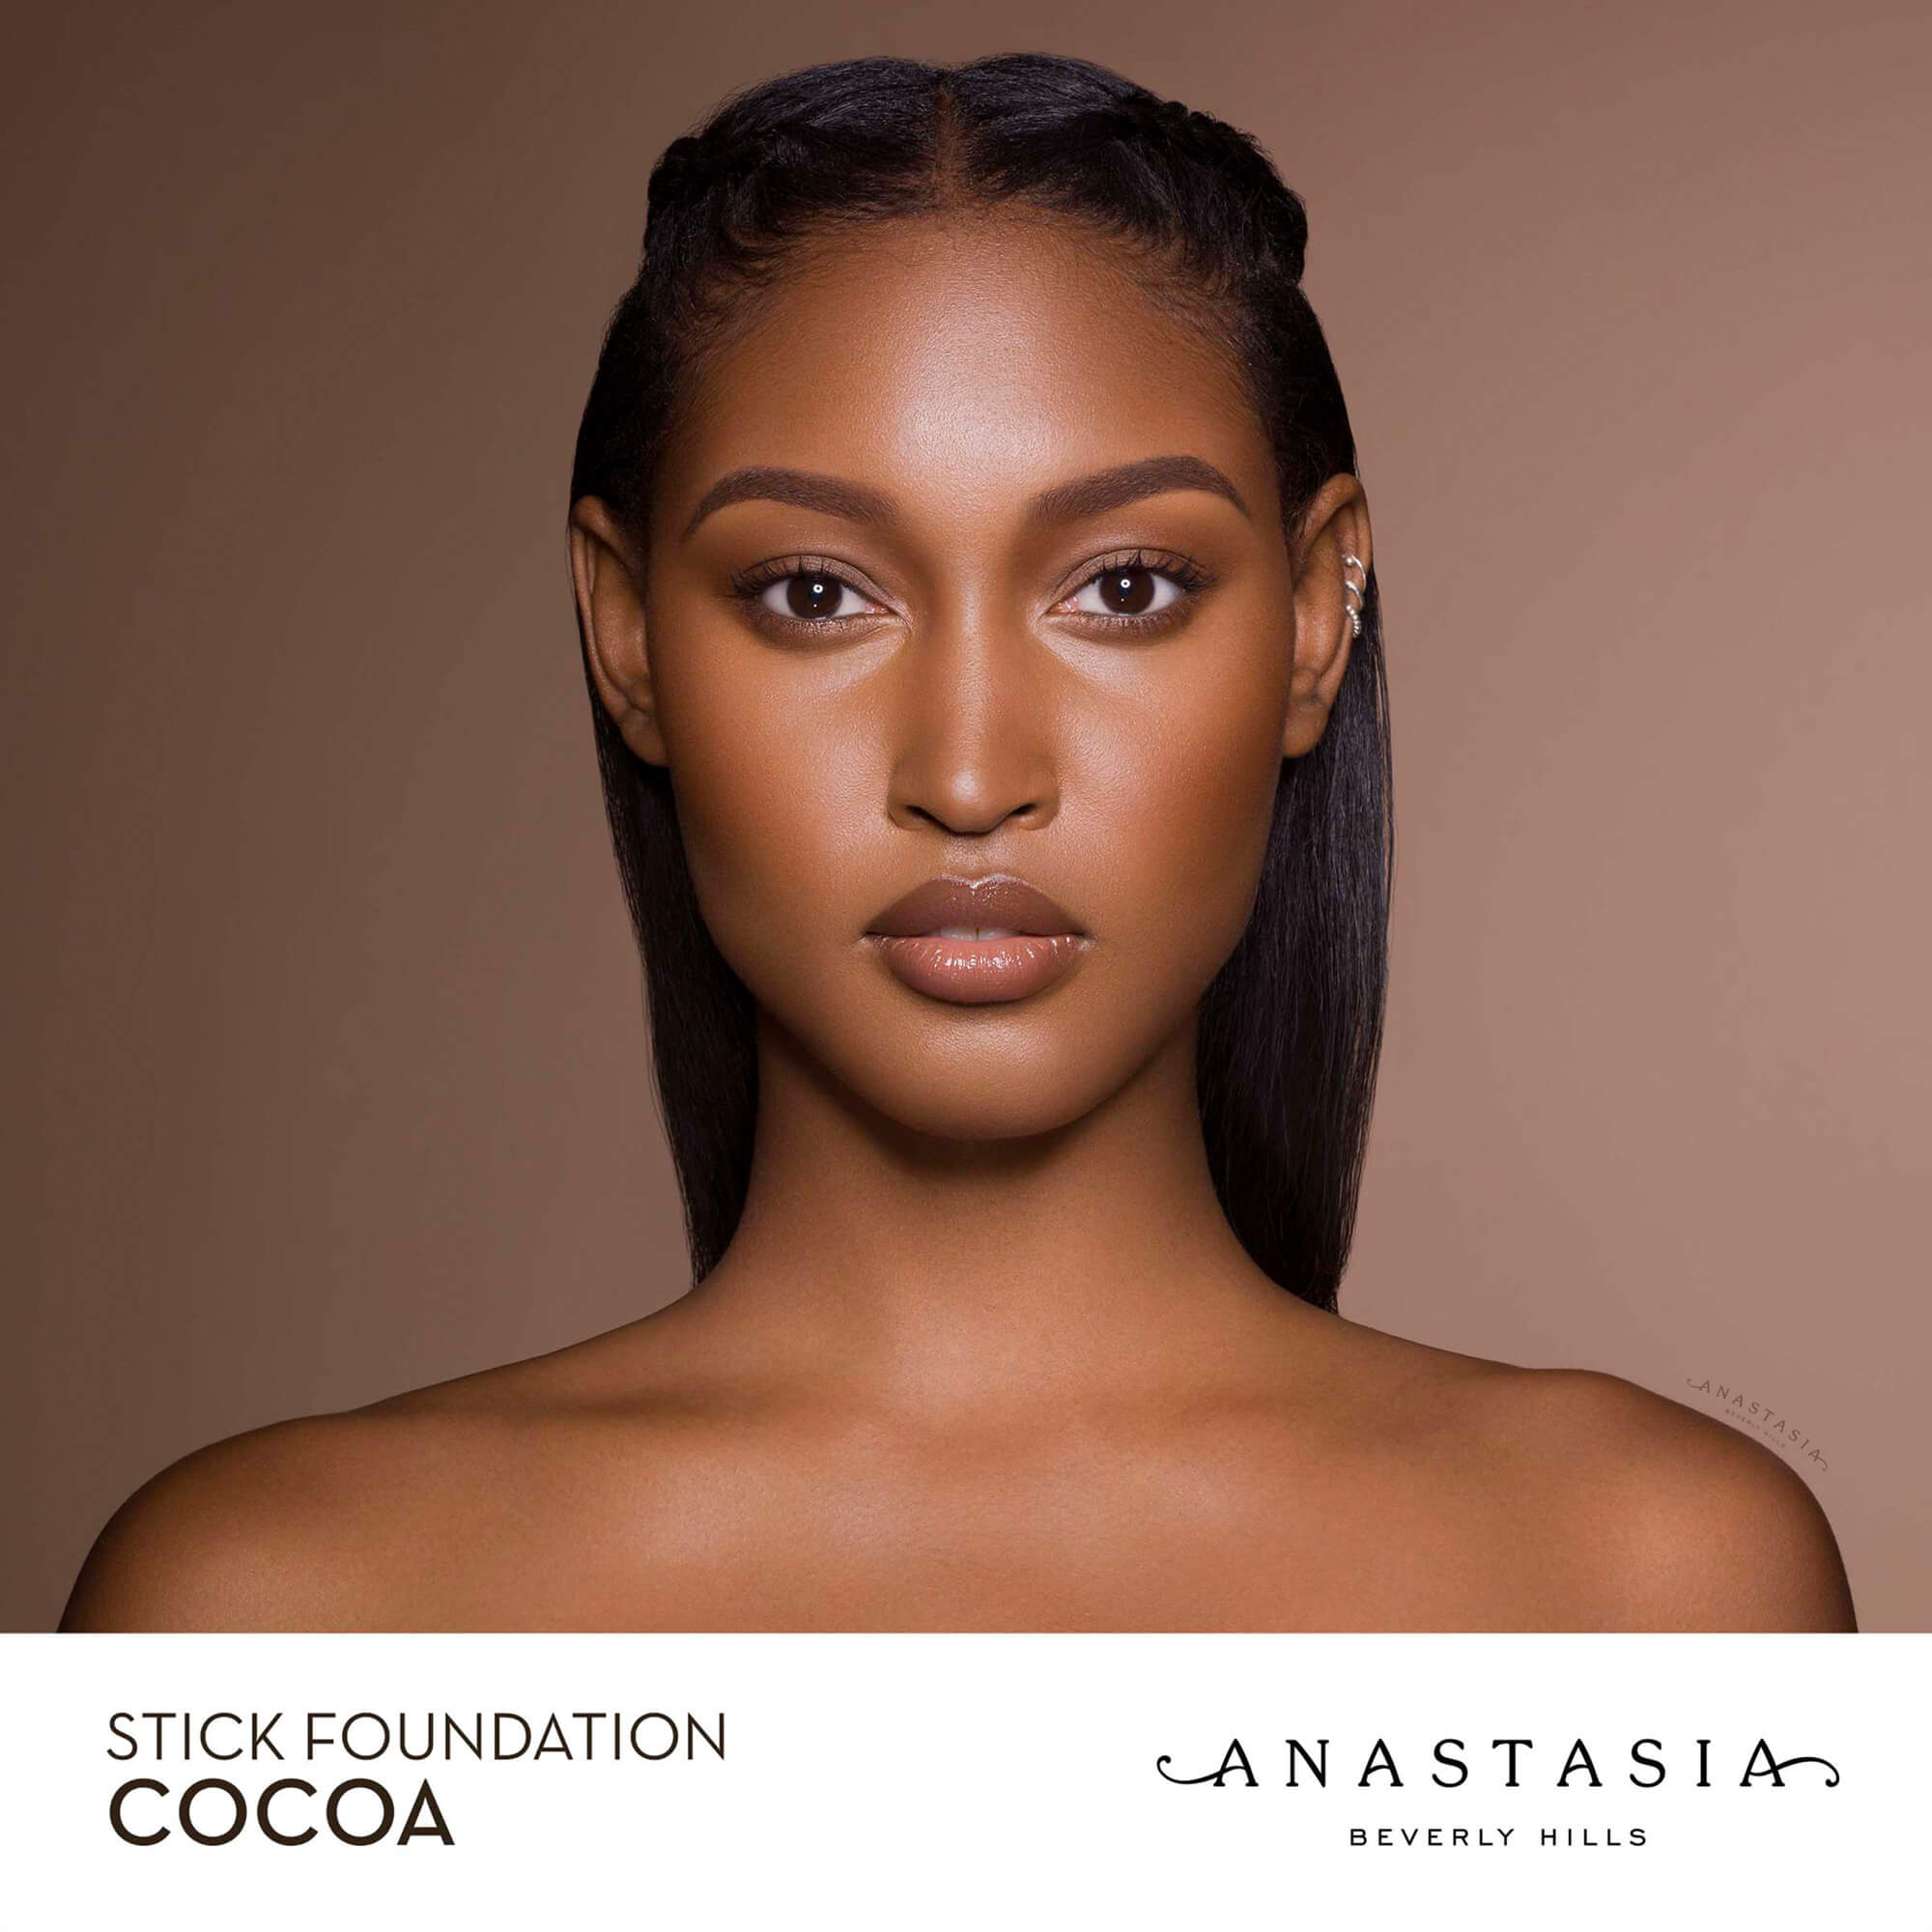 Stick Foundation - Cocoa